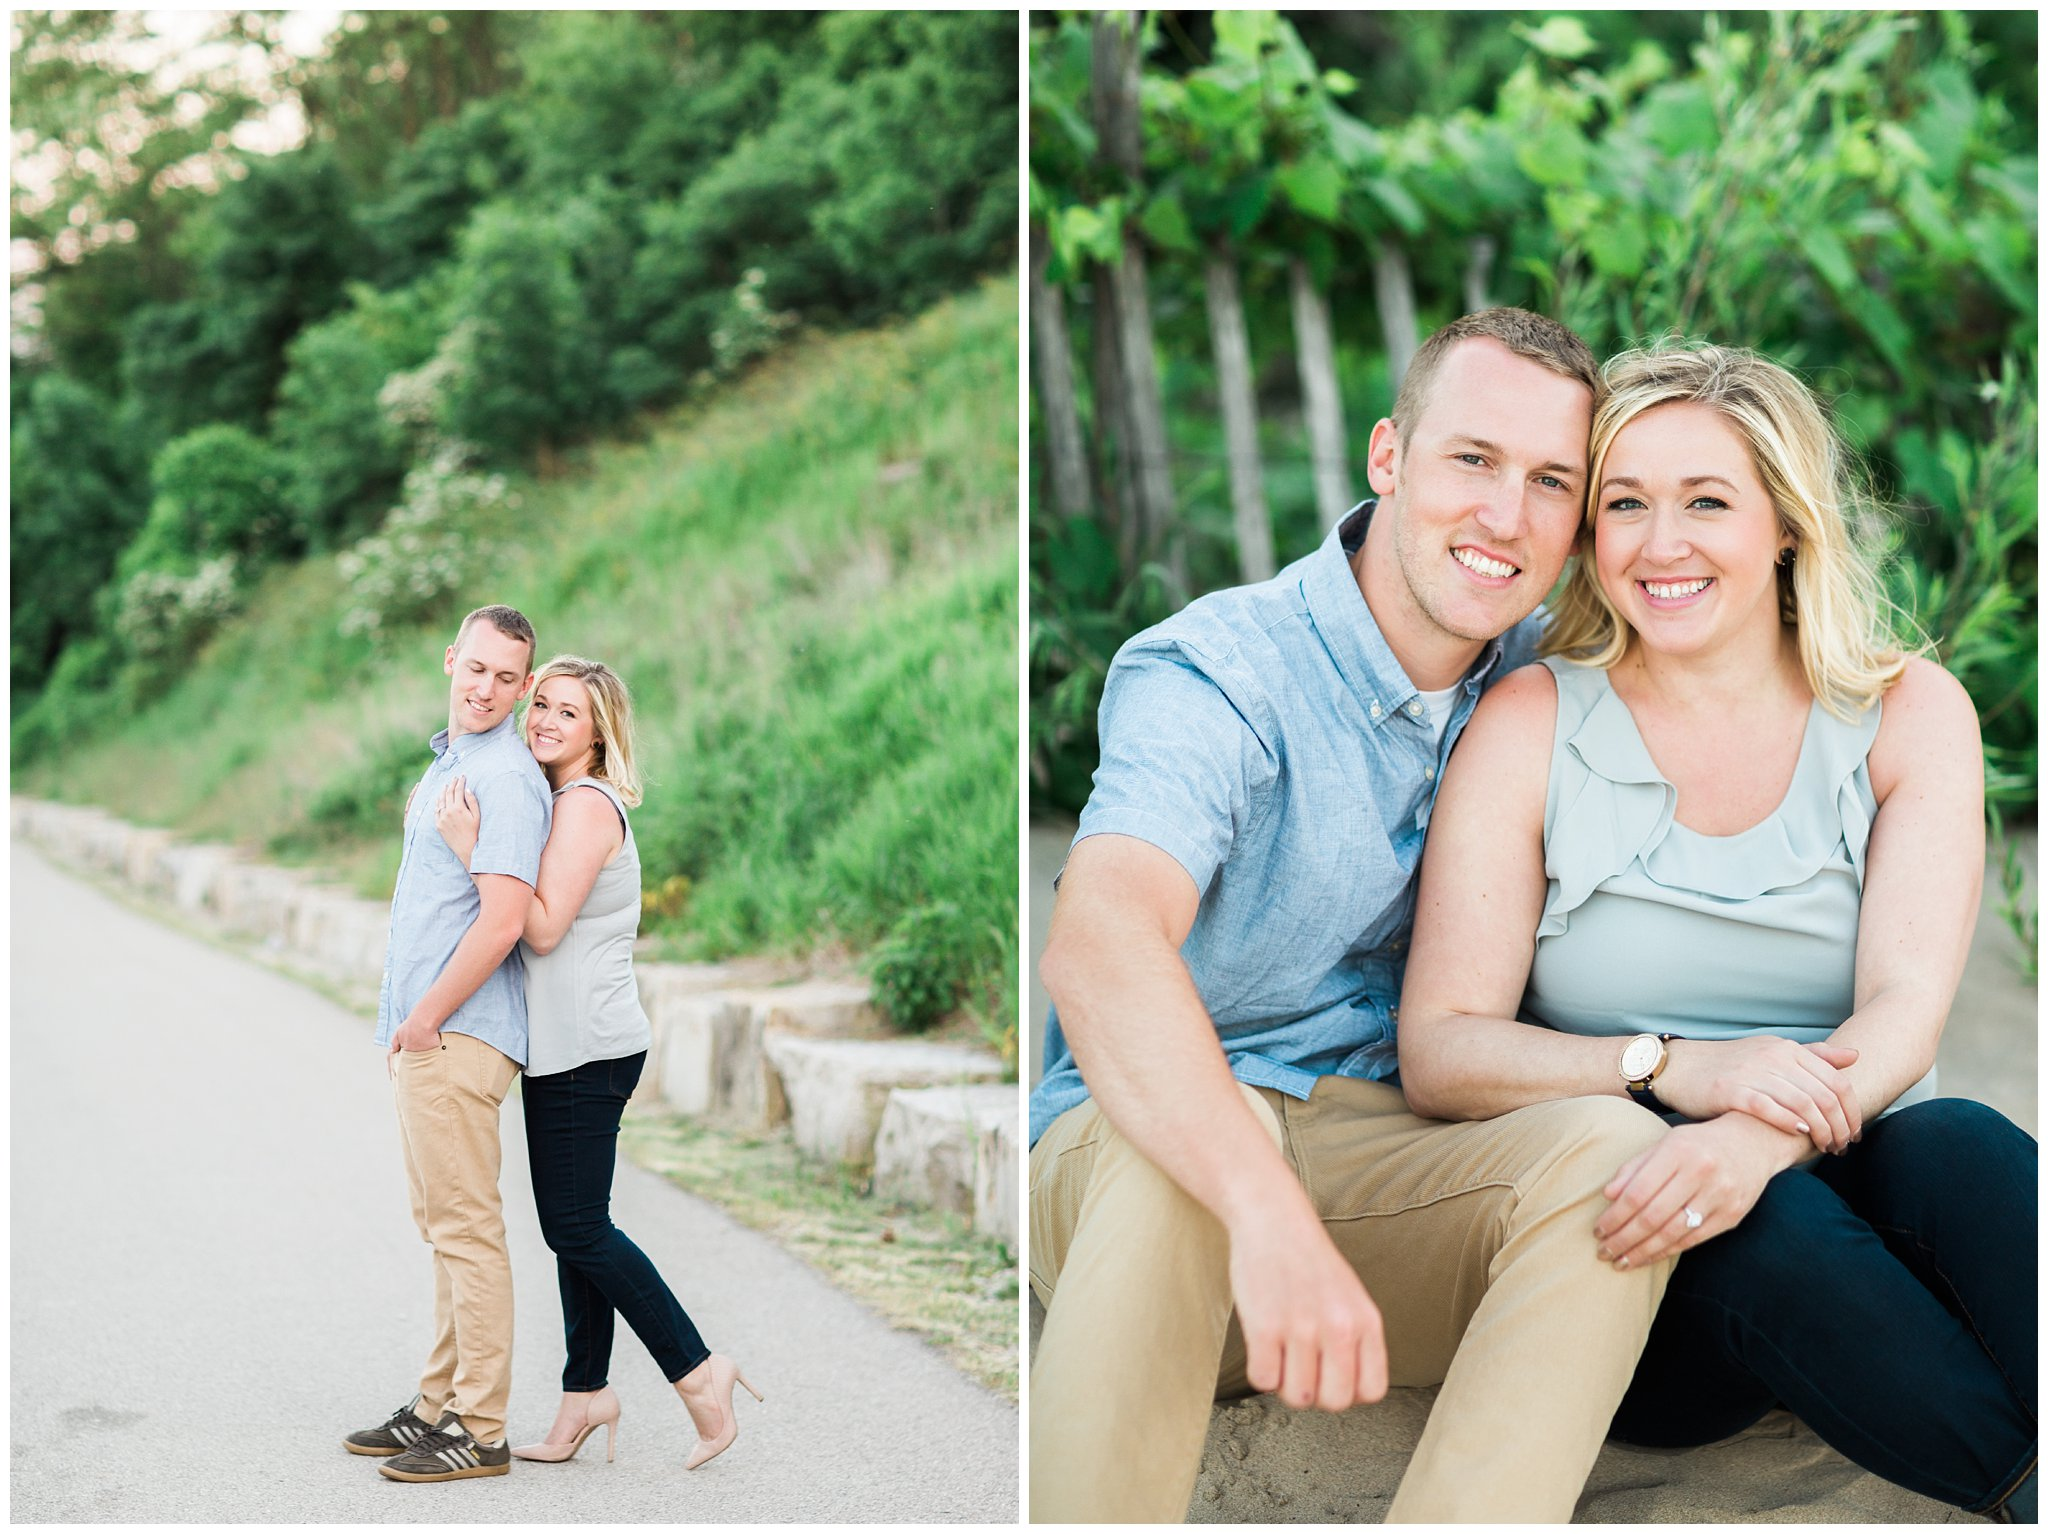 C&G_MilwaukeeEngagementSession_015.jpg